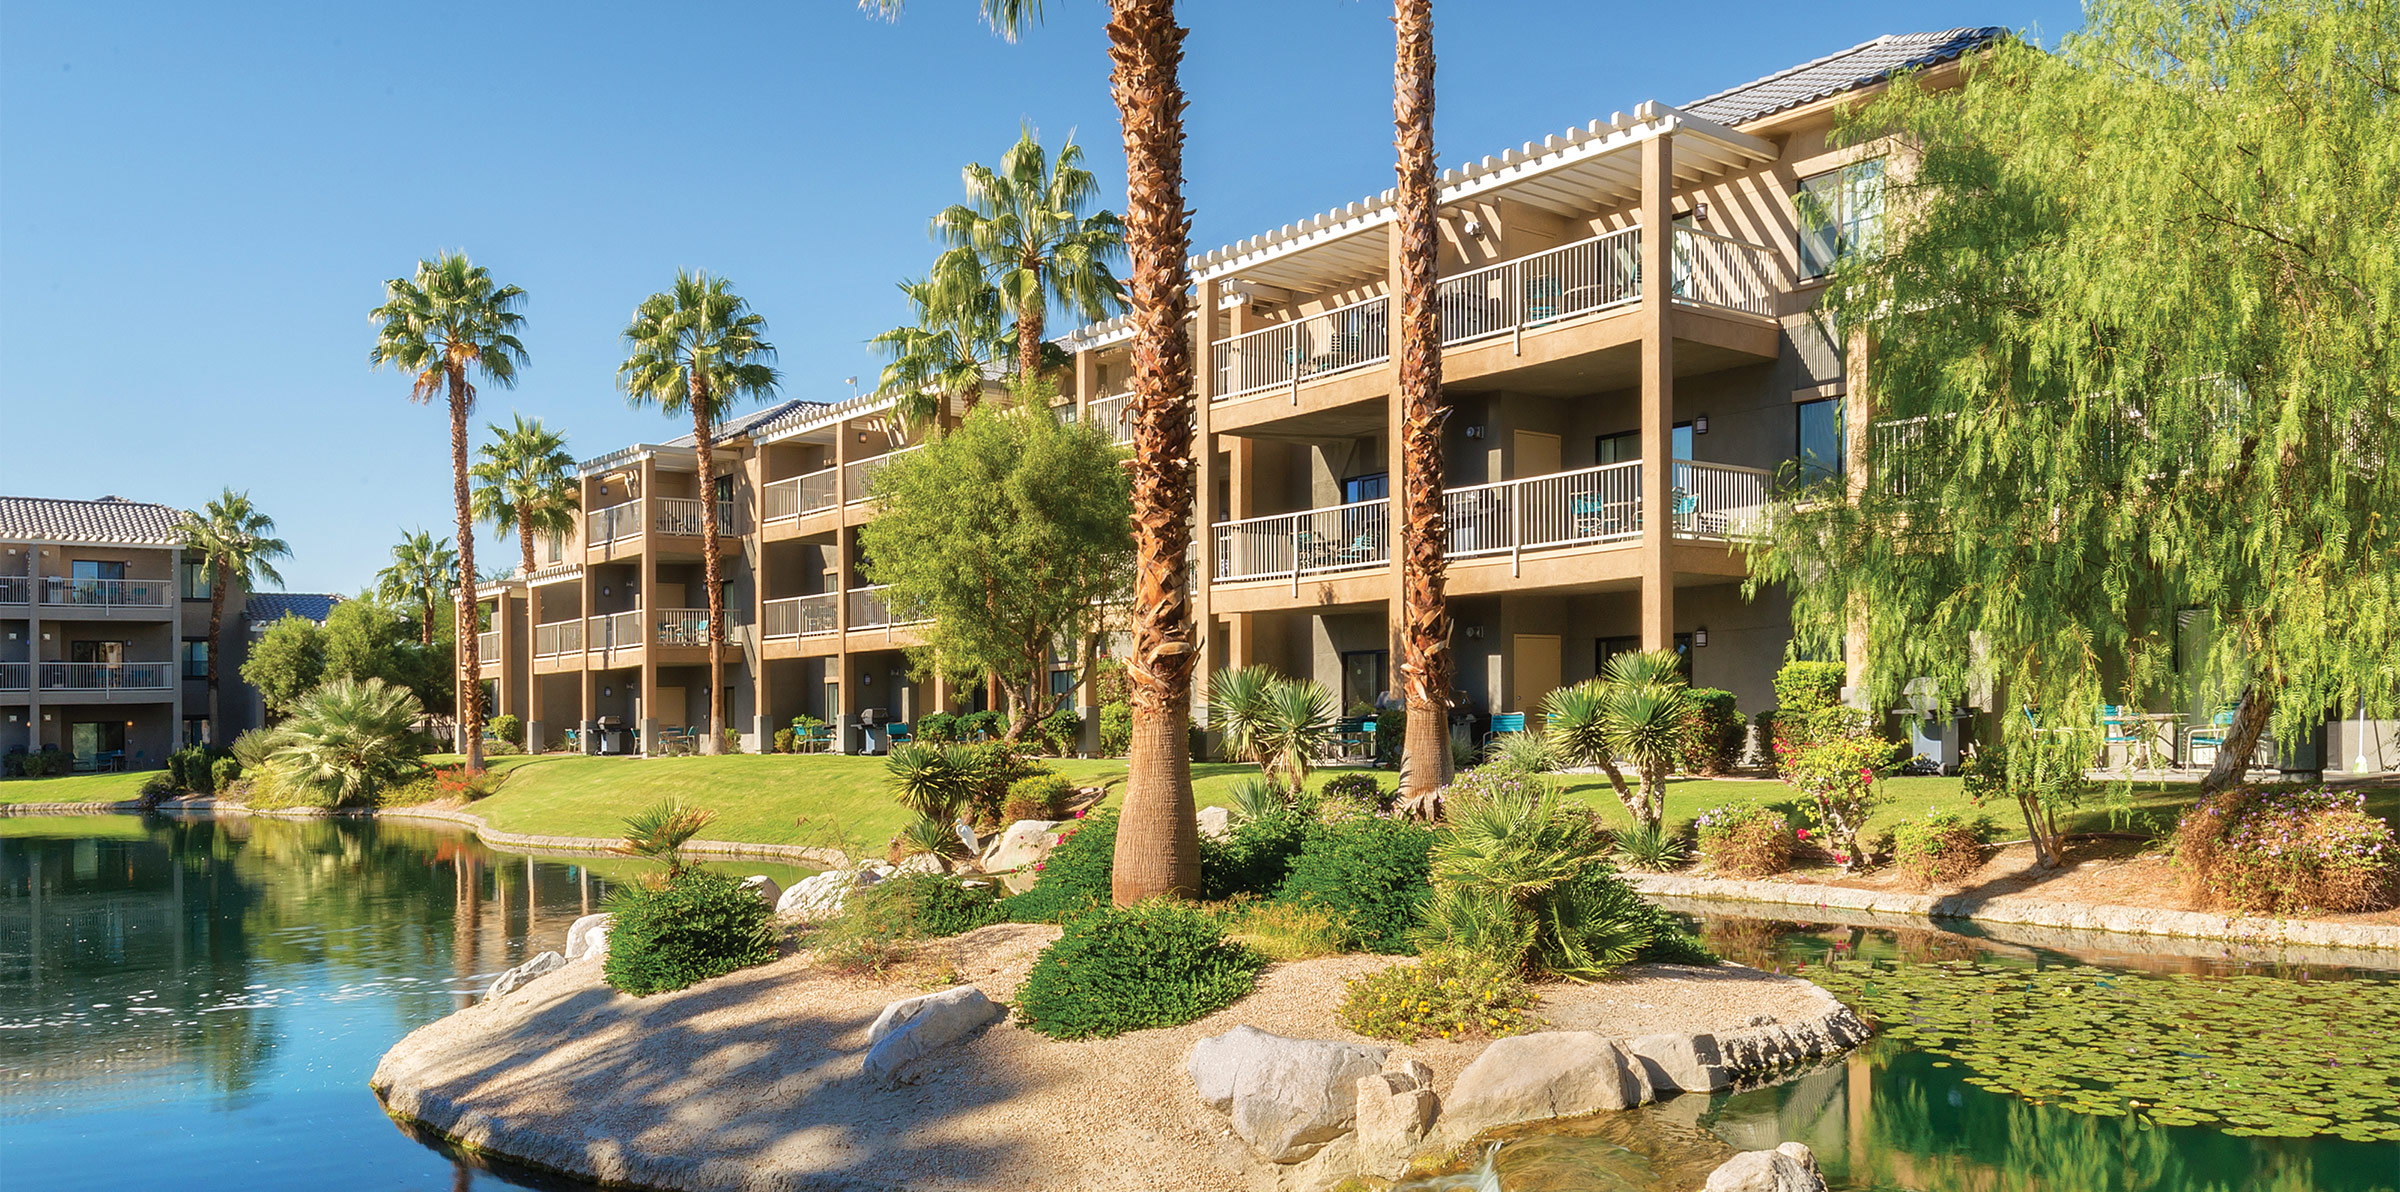 """1 Bedroom 1 Bath In Indio, CA. """"Palm Springs"""" 5 miles from COACHELLA photo 20211937"""